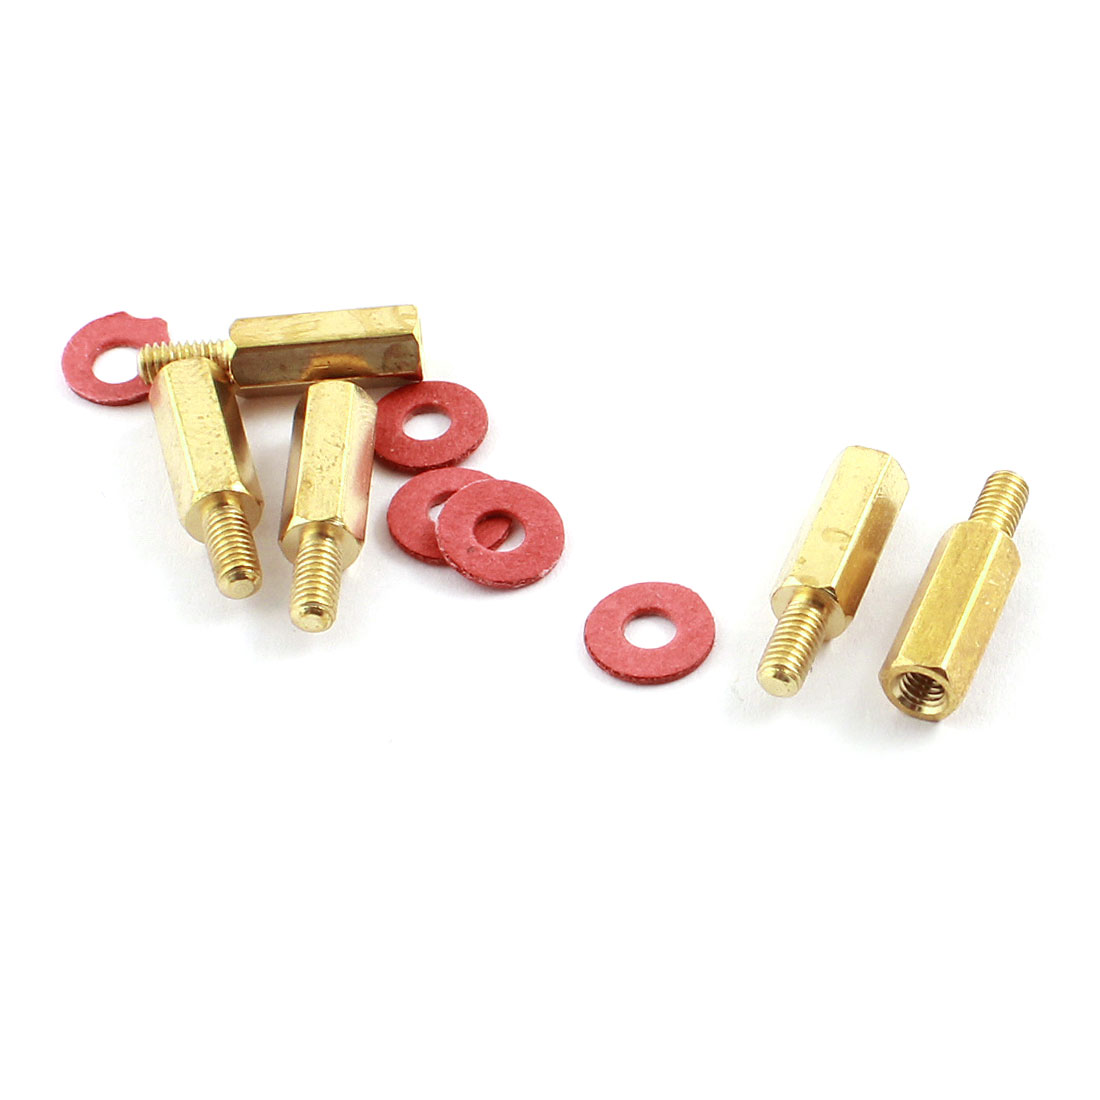 M3 12+6mm Brass Standoff Hexagonal Spacer 5 Pcs for PC PCB Motherboard